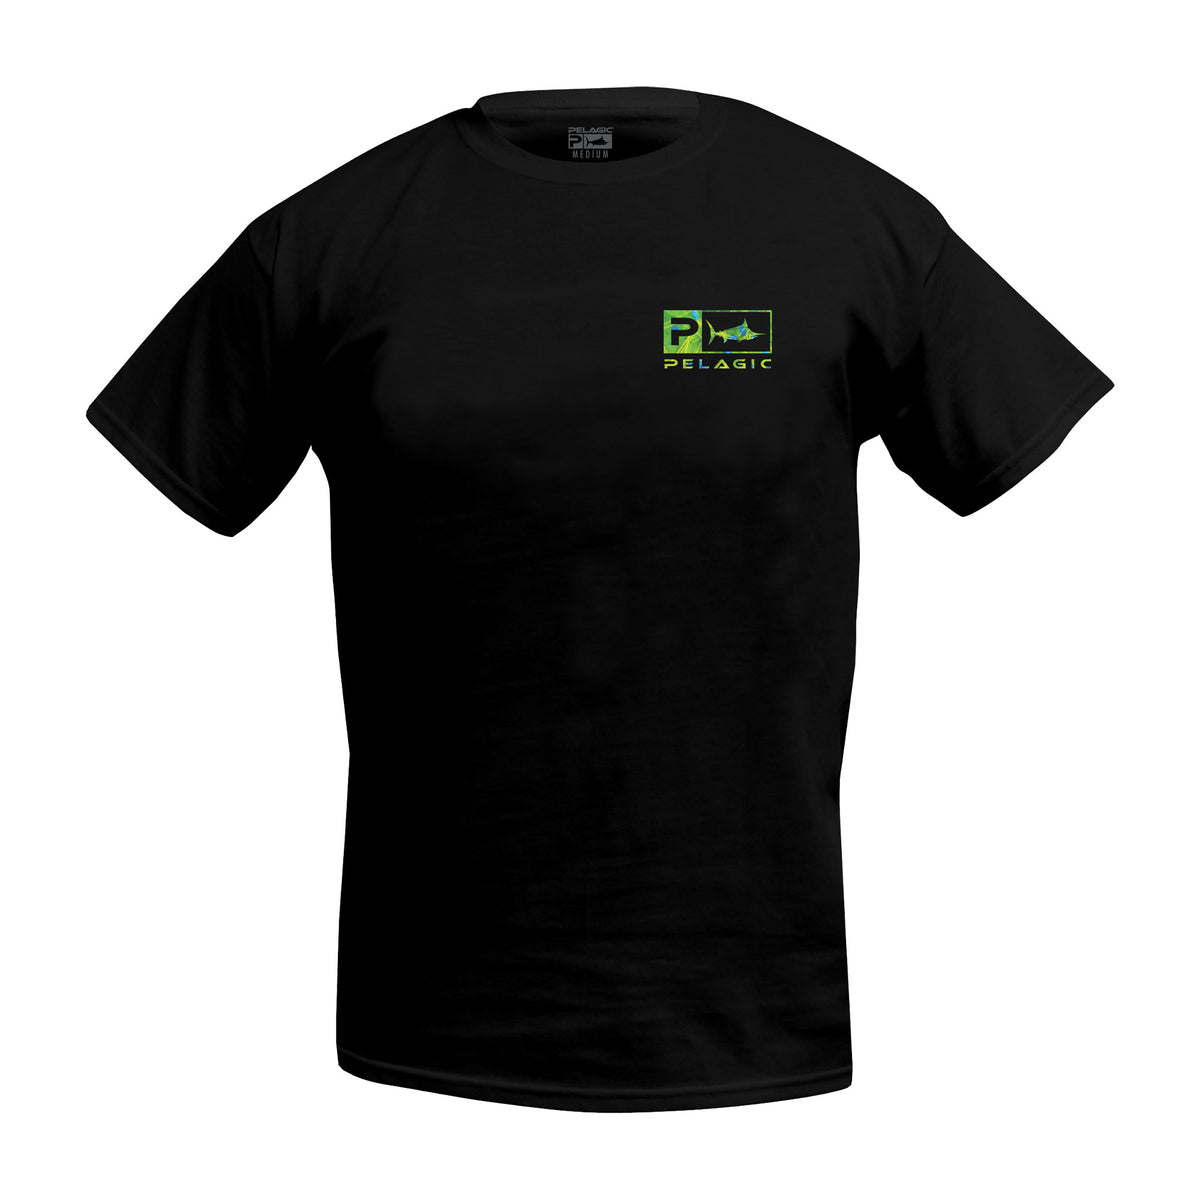 Deluxe Dorado Green T-shirt Big Image - 2